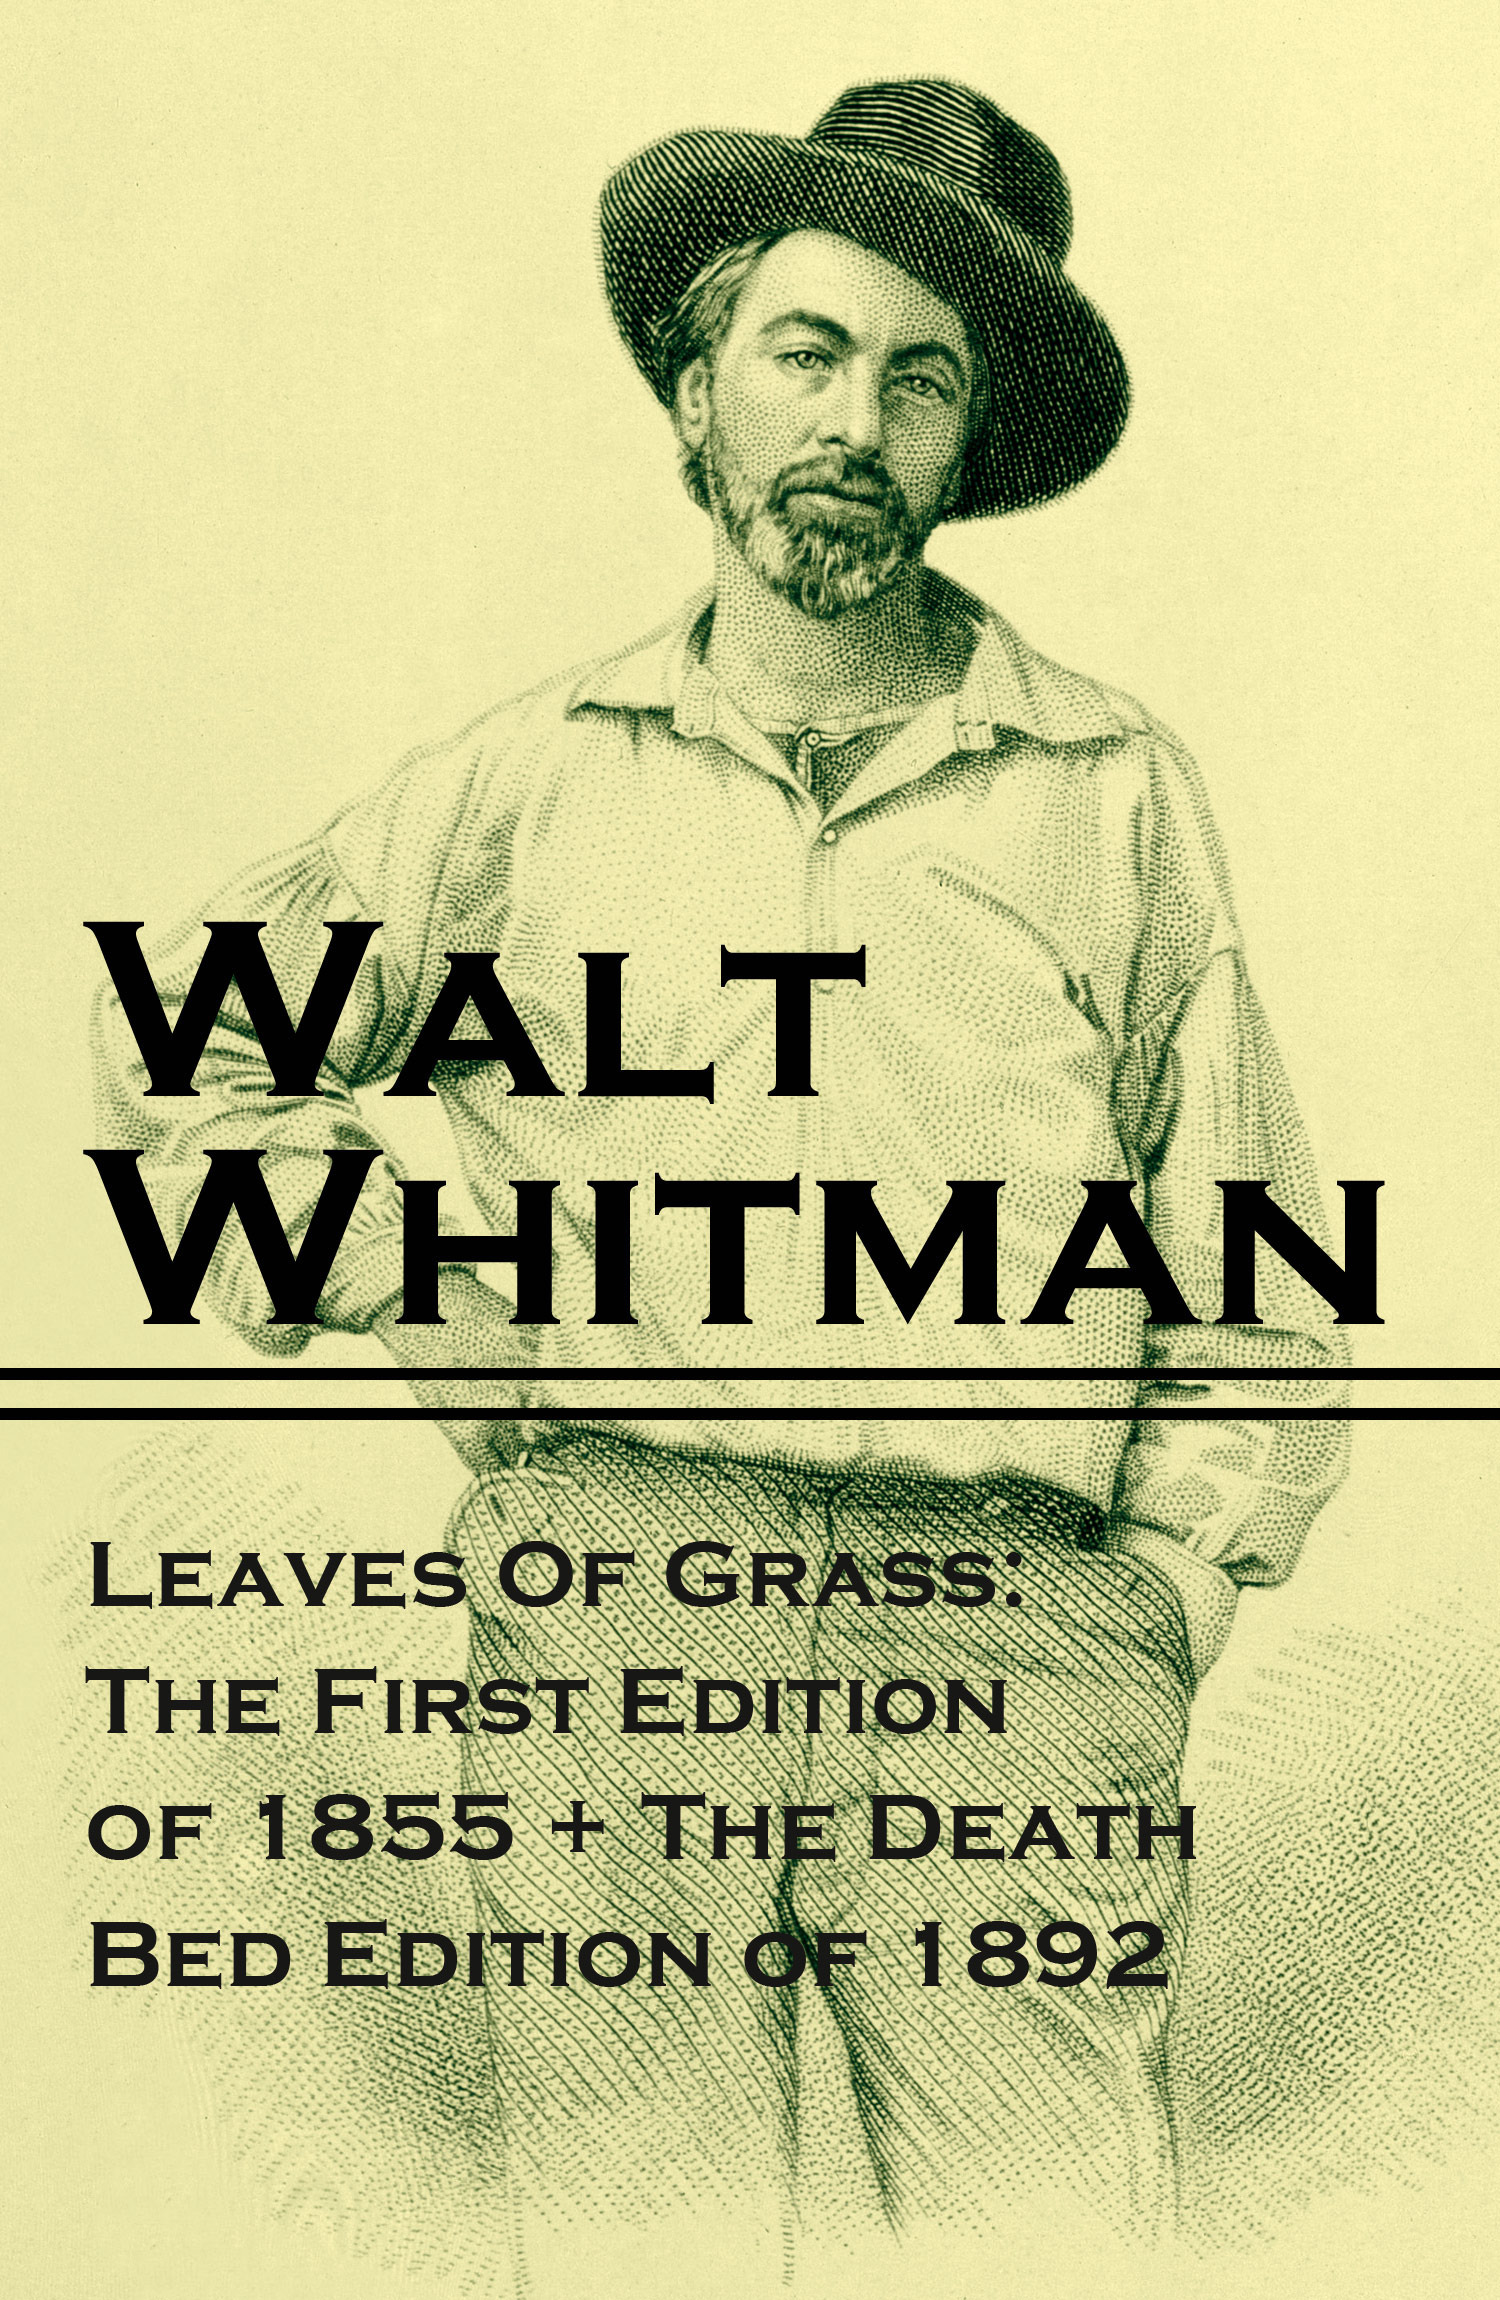 Leaves Of Grass: The First Edition of 1855 + The Death Bed Edition of 1892